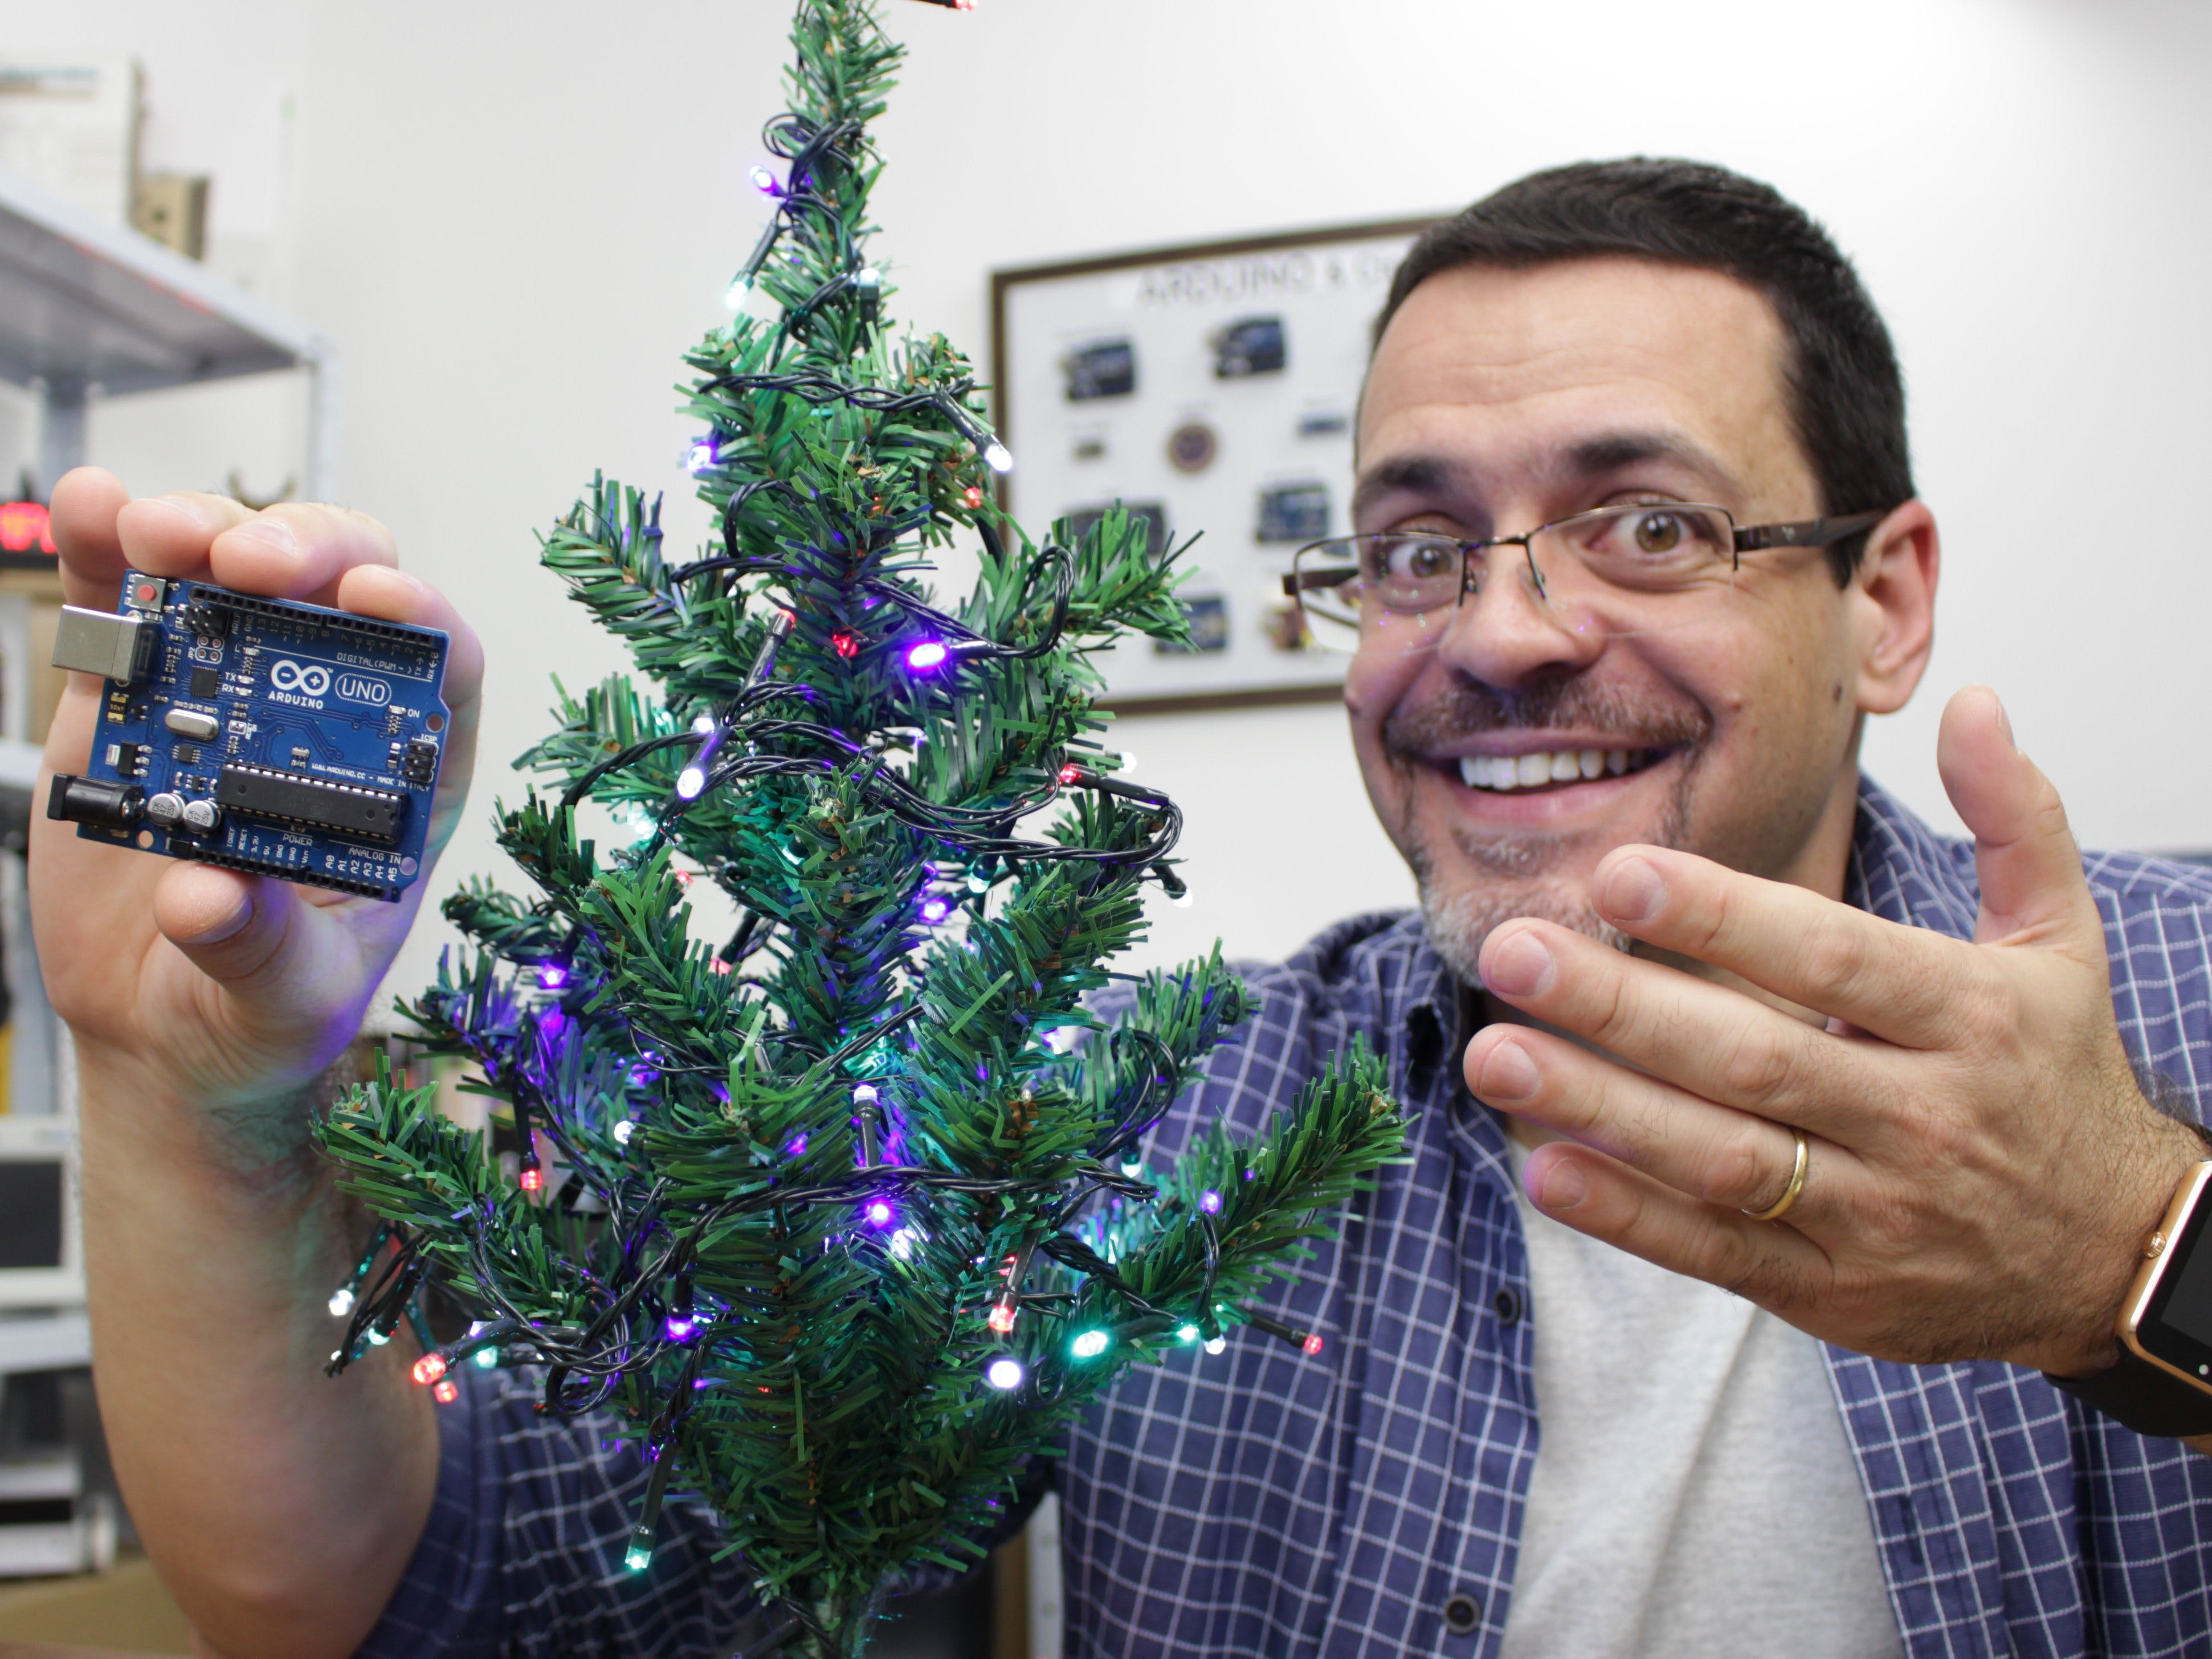 Clap Control for Christmas Tree